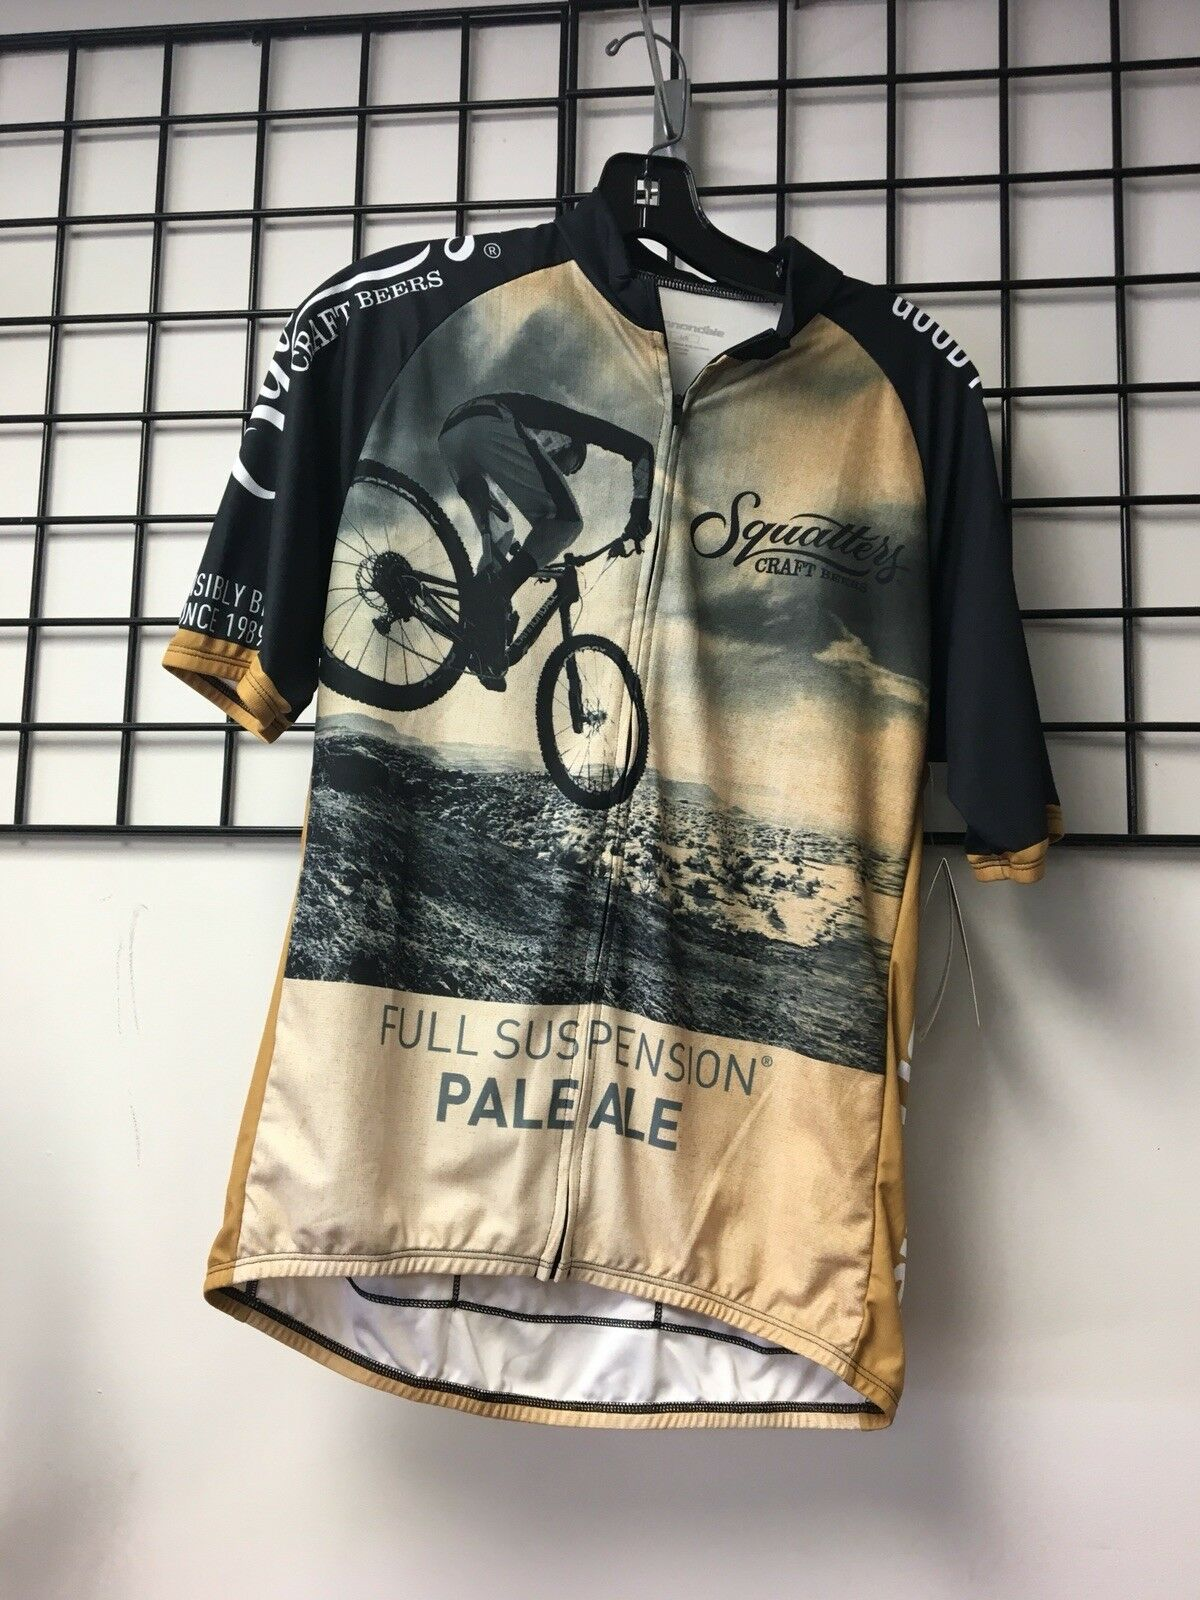 Cannondale Squatters Brewery Pale Ale  jersey  guaranteed